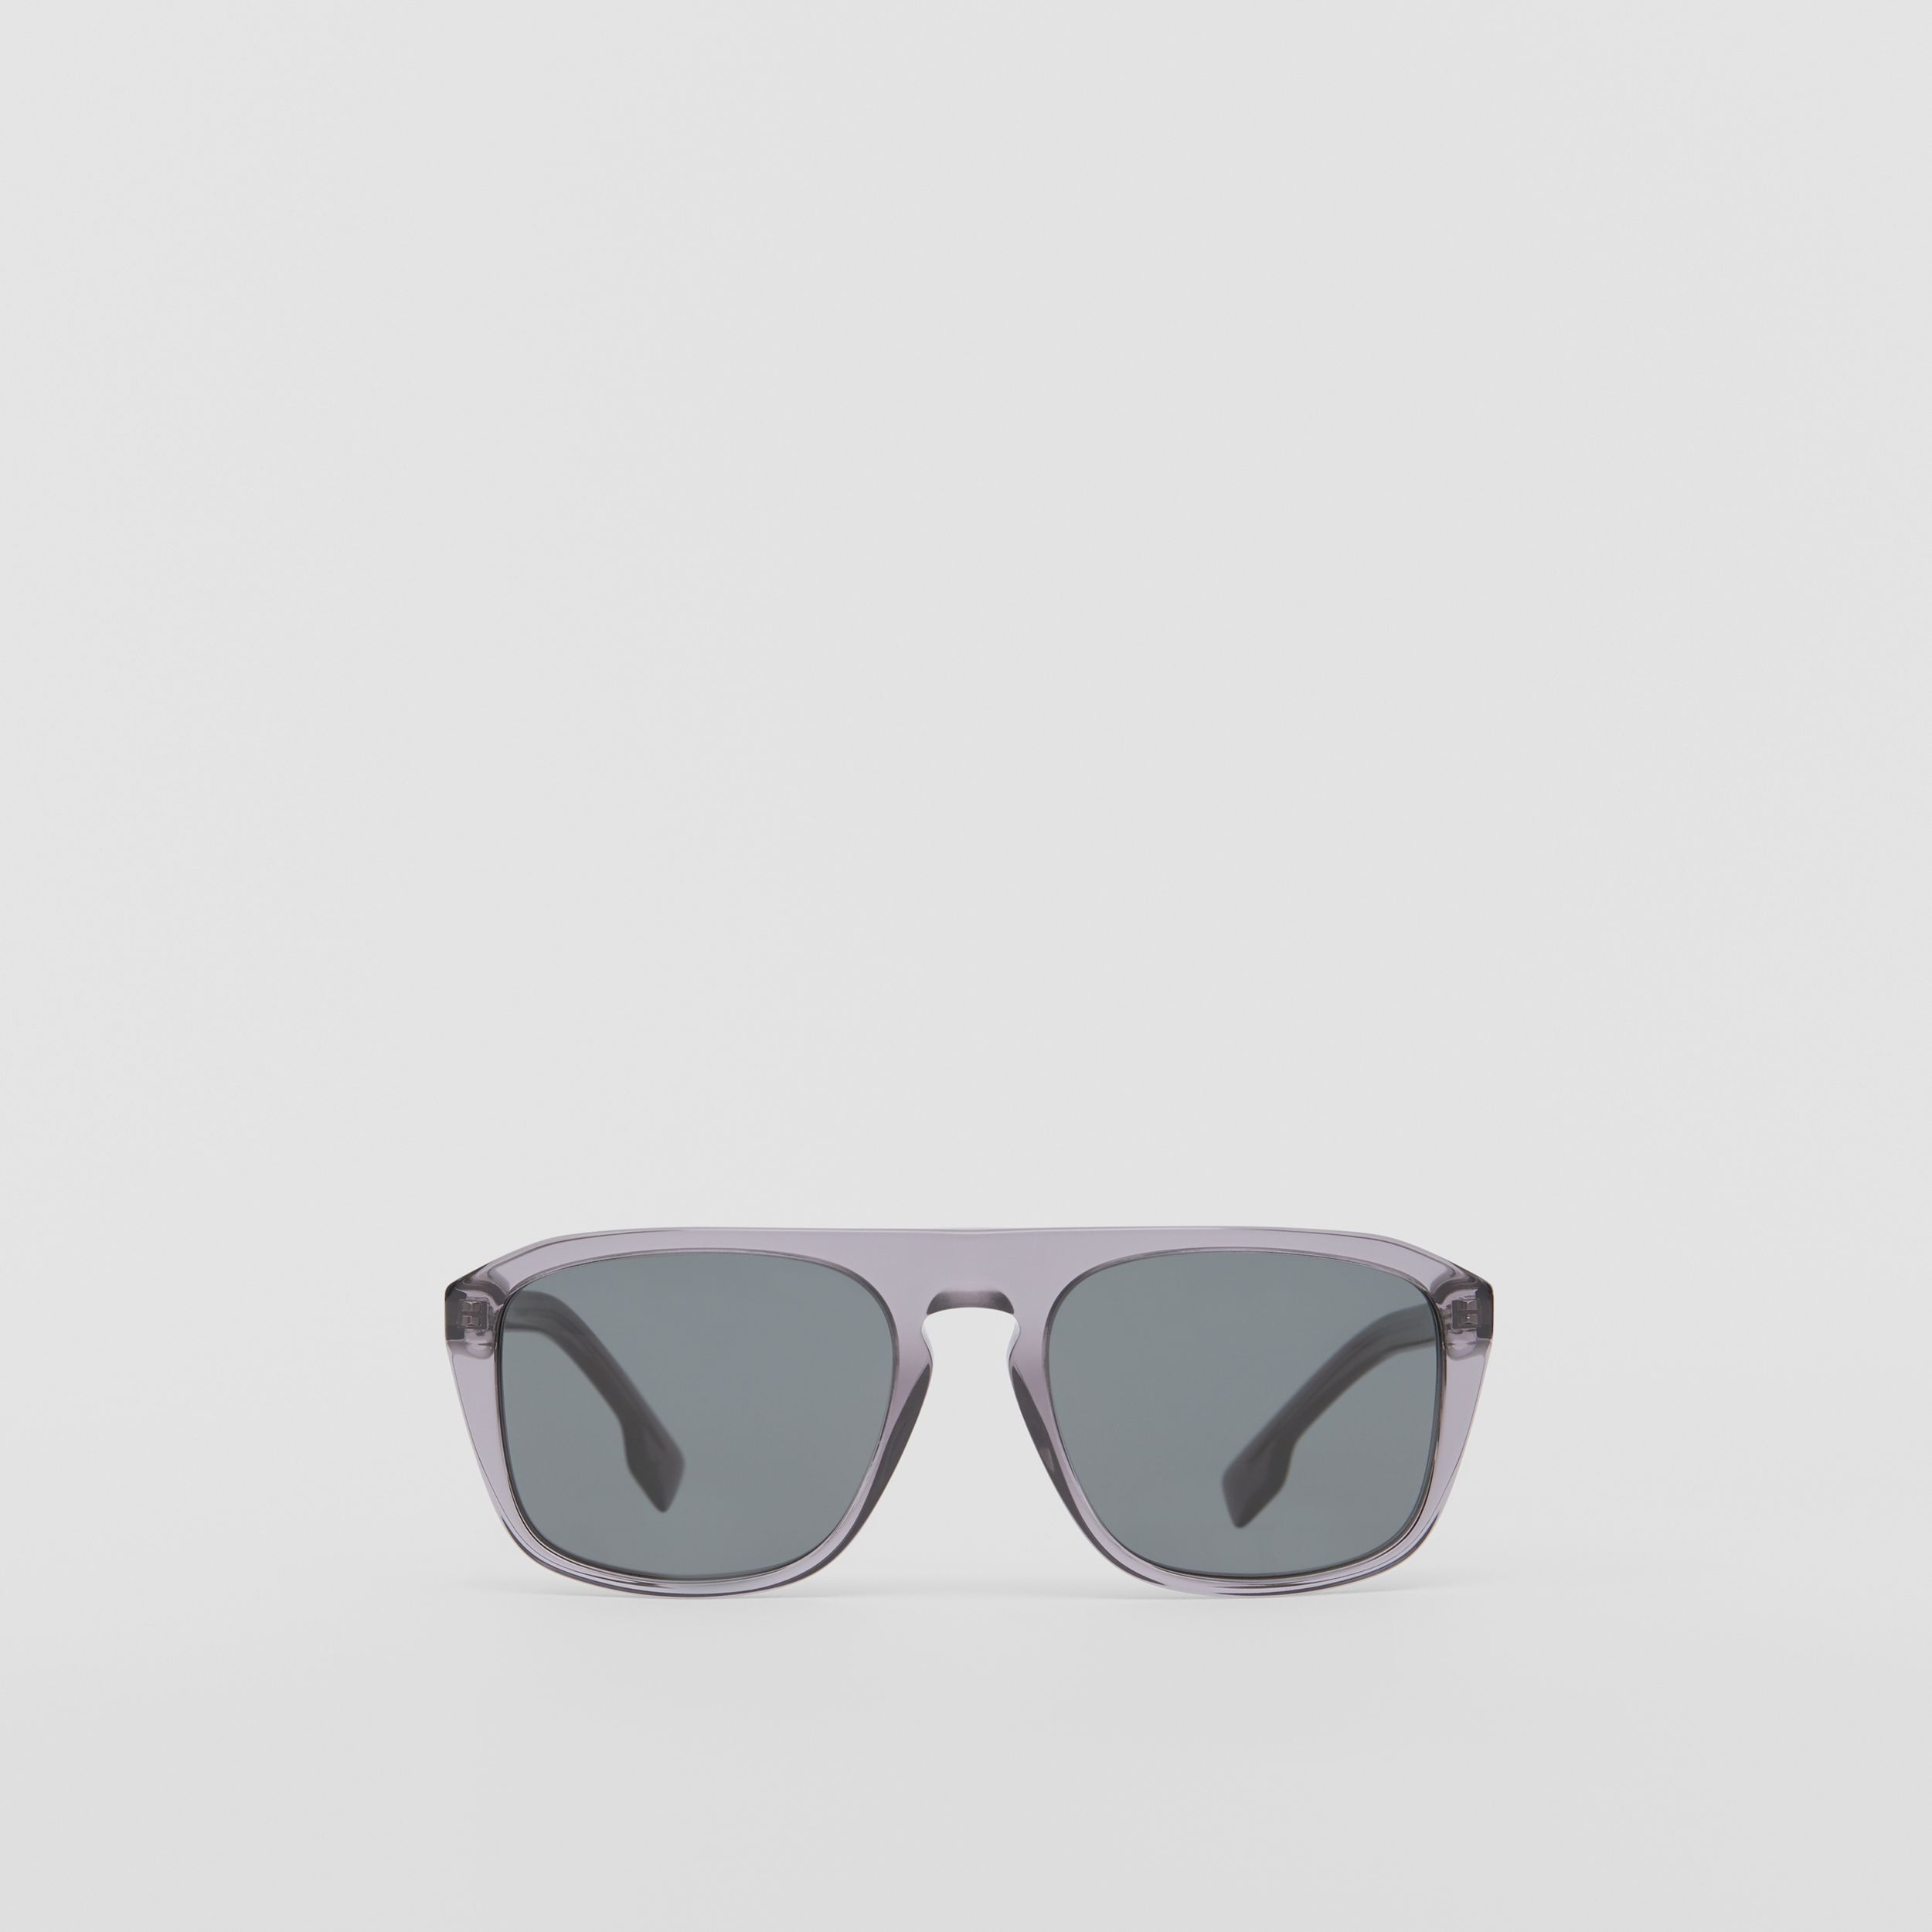 Navigator Sunglasses in Grey - Men | Burberry Singapore - 1